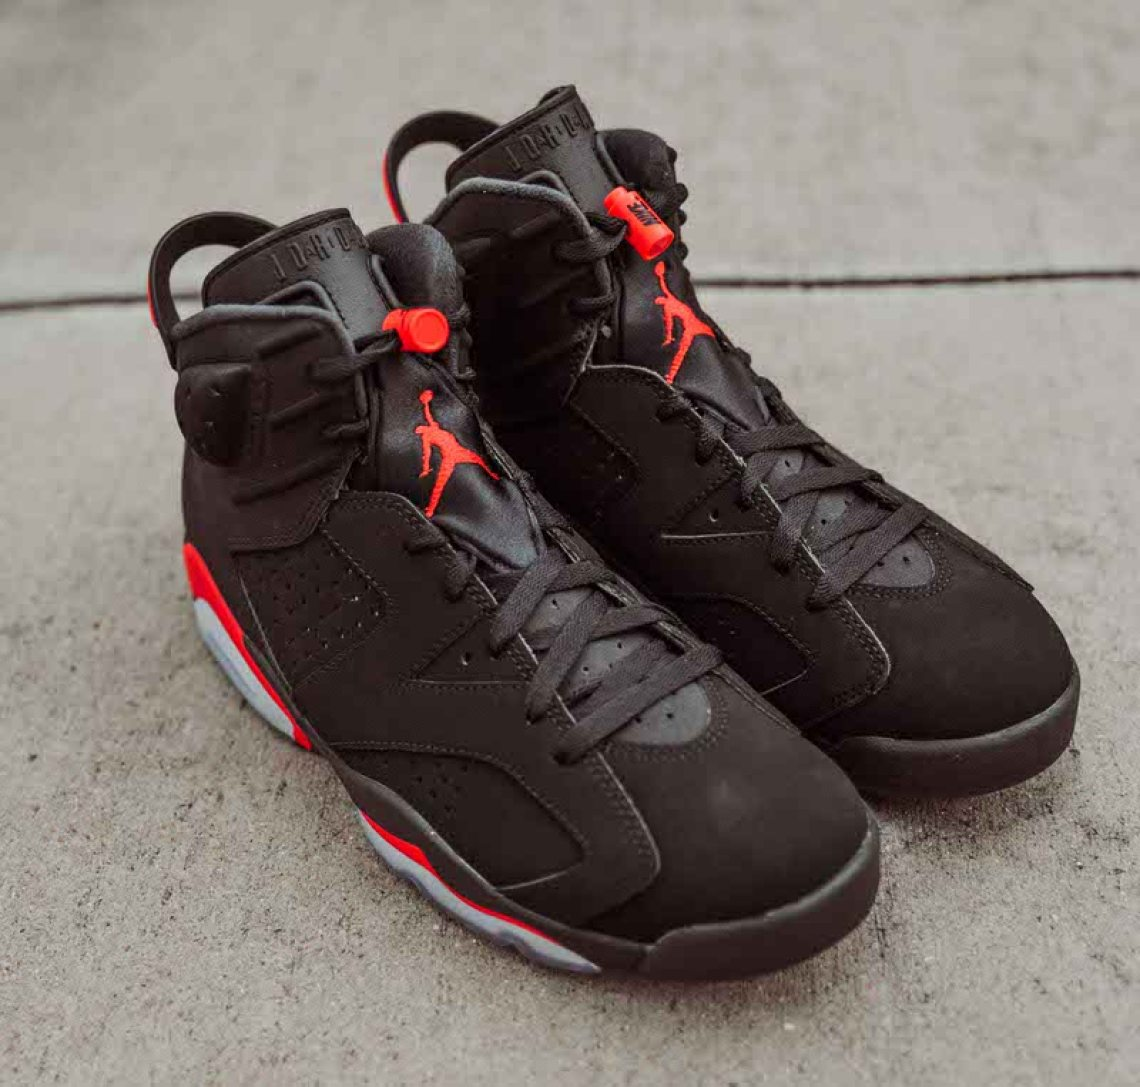 183bfdfcb42 Original release info source: pinoe77 · Air Jordan 6 Retro LTR